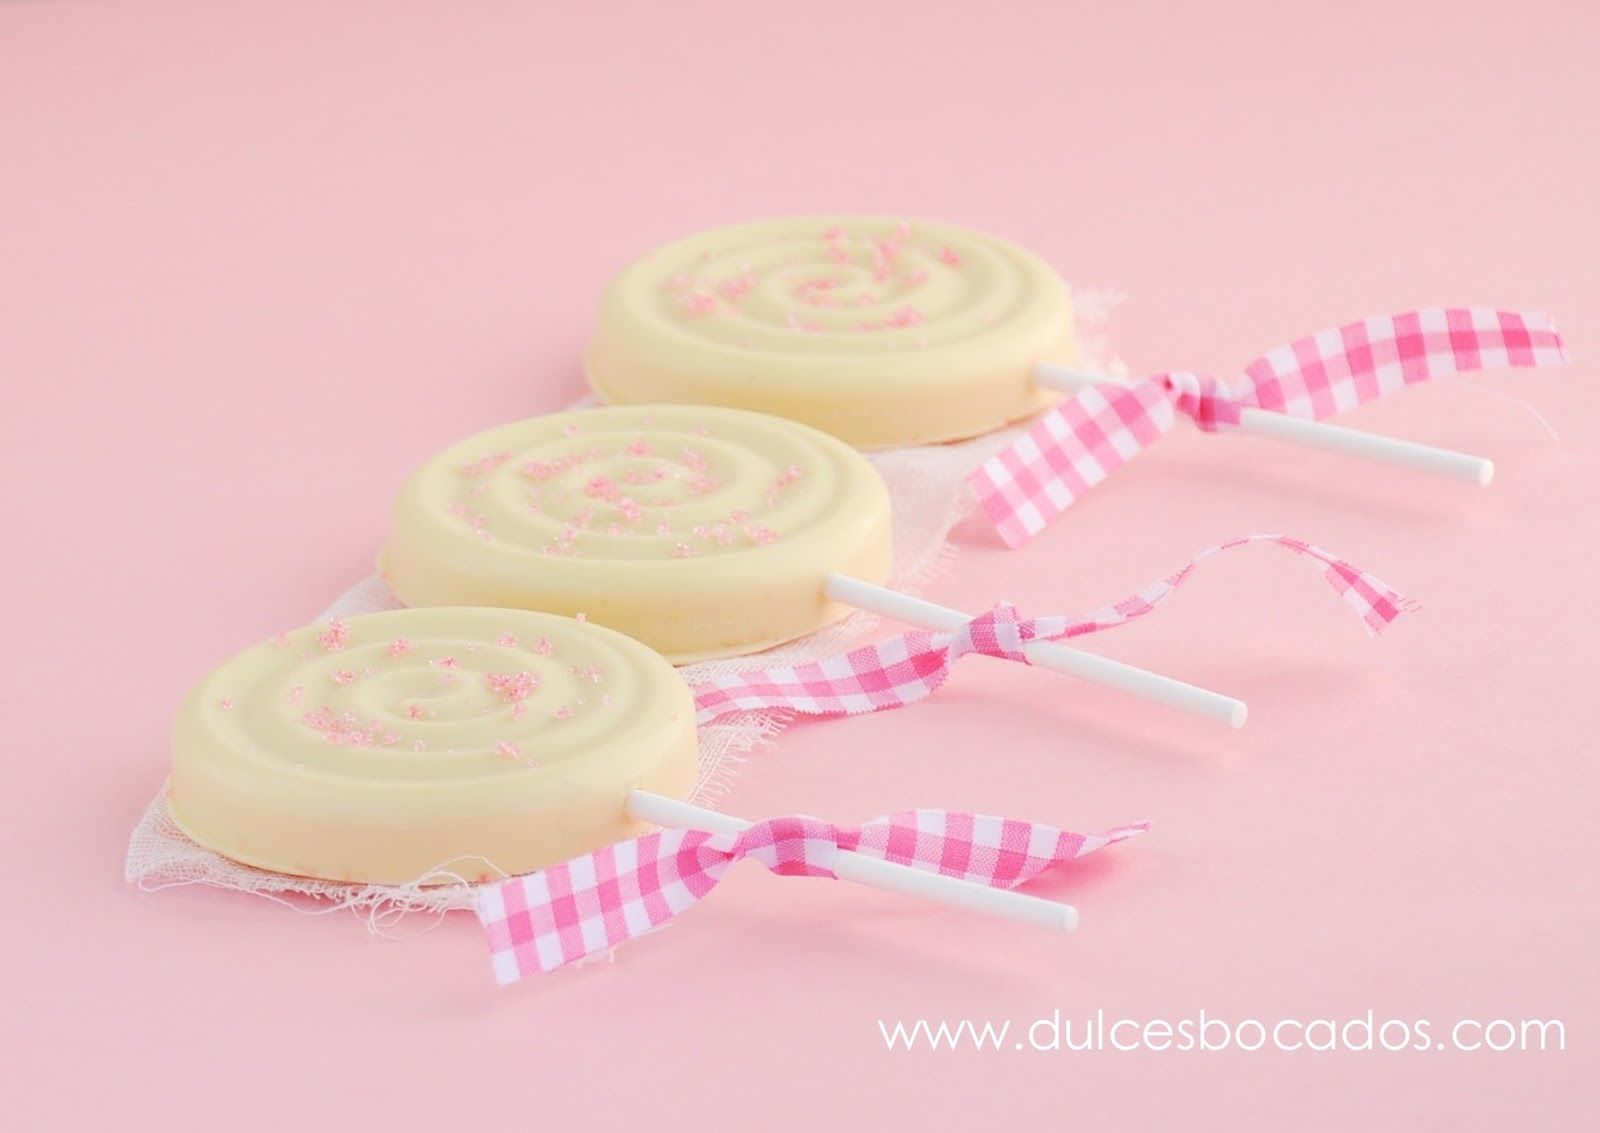 White Chocolate Rose Lollipops